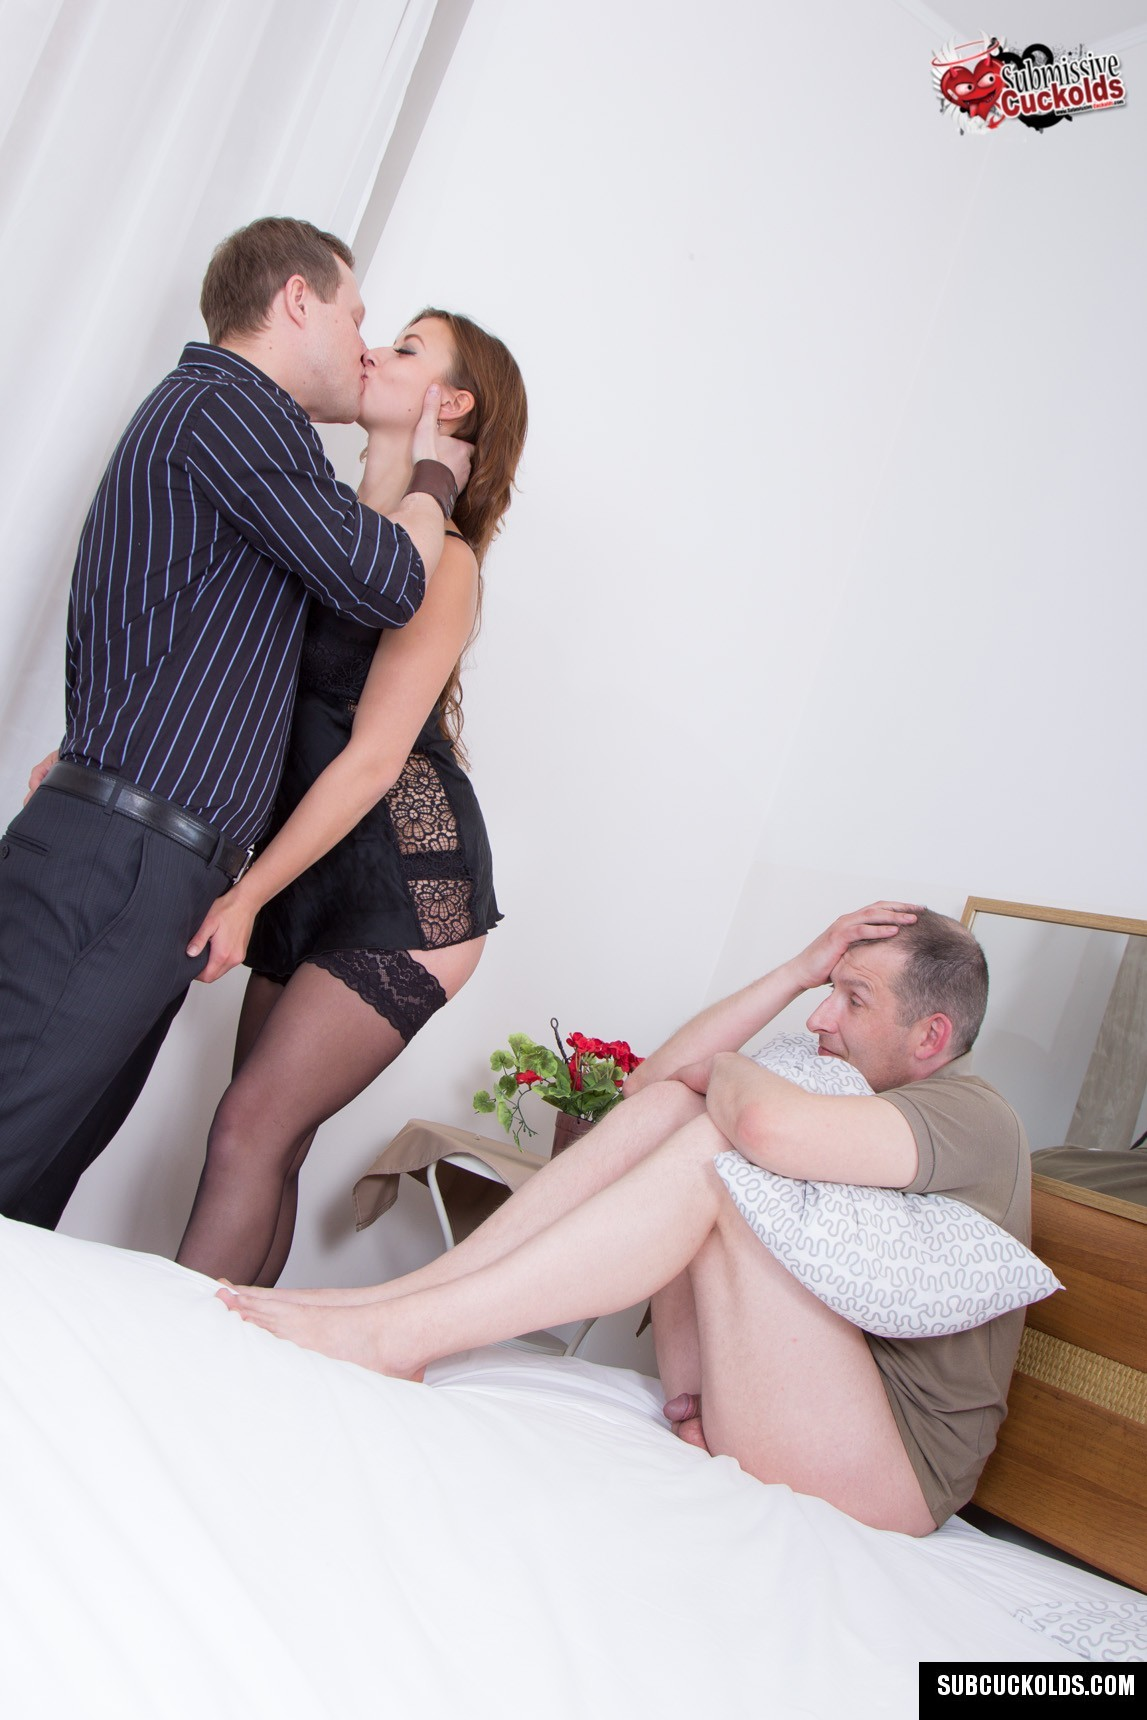 A young cuckold relationship part 3 - 3 part 2